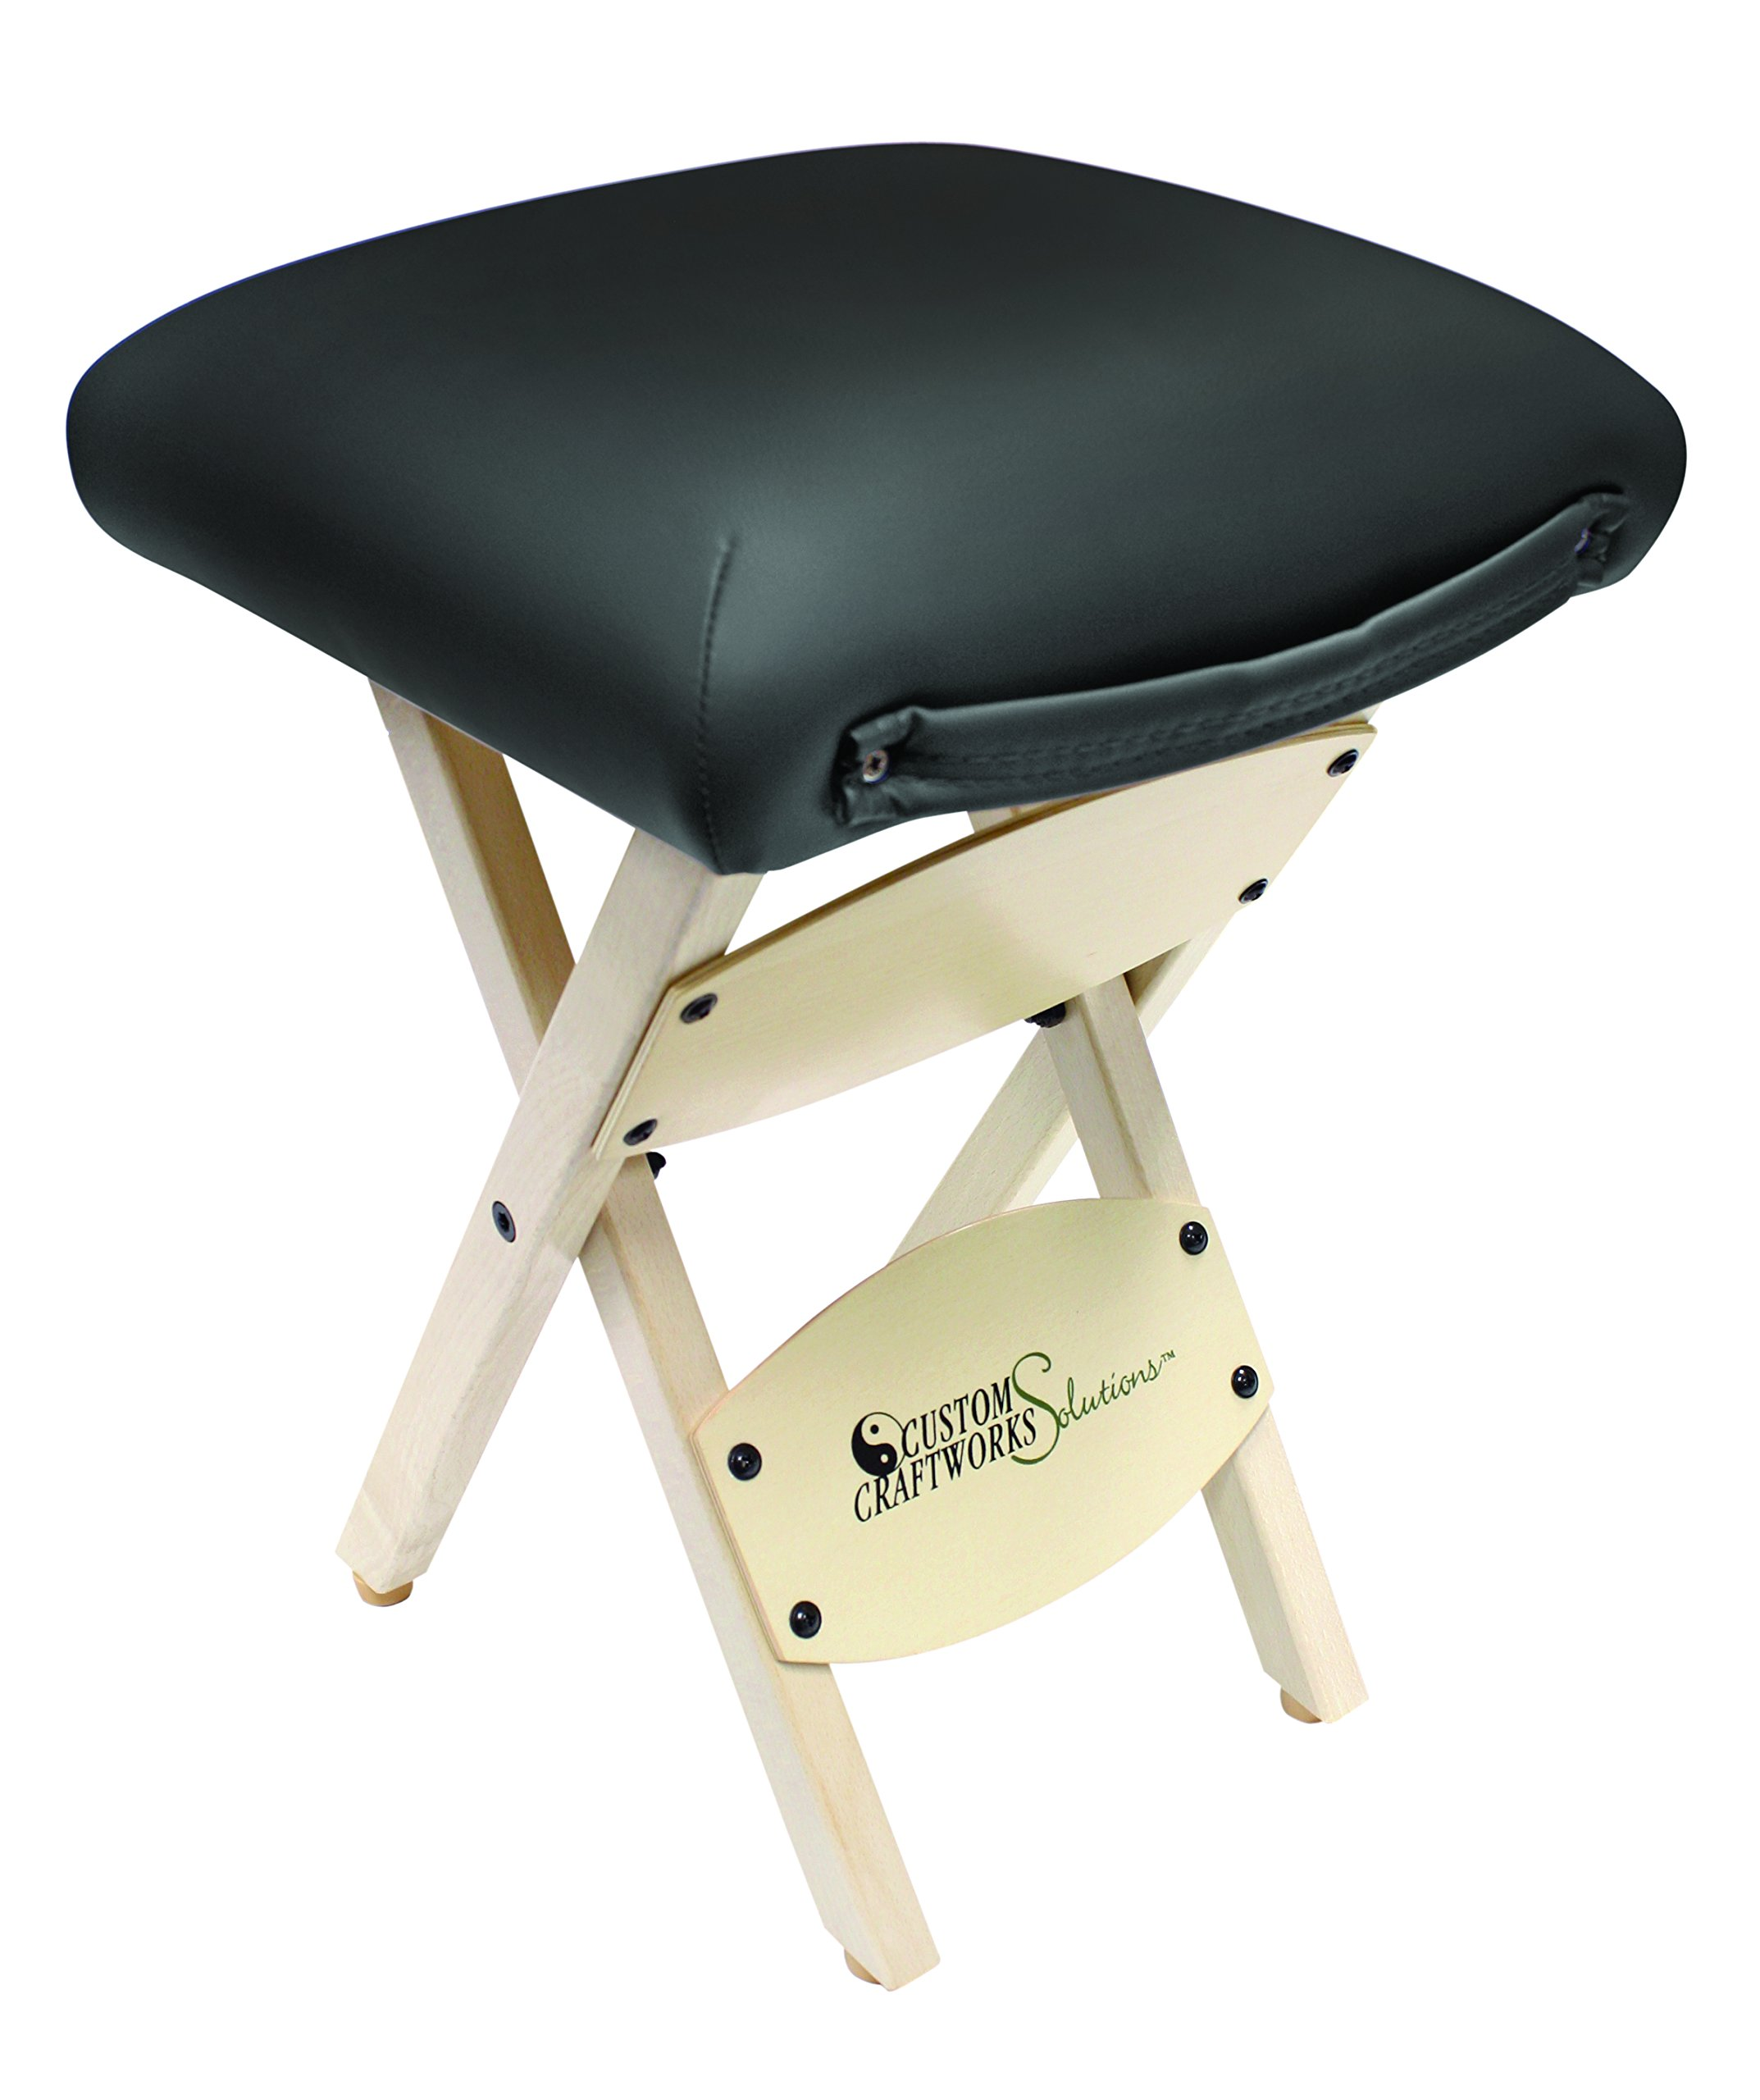 Custom Craftworks Wooden Folding Stool with PU Cushions, Black